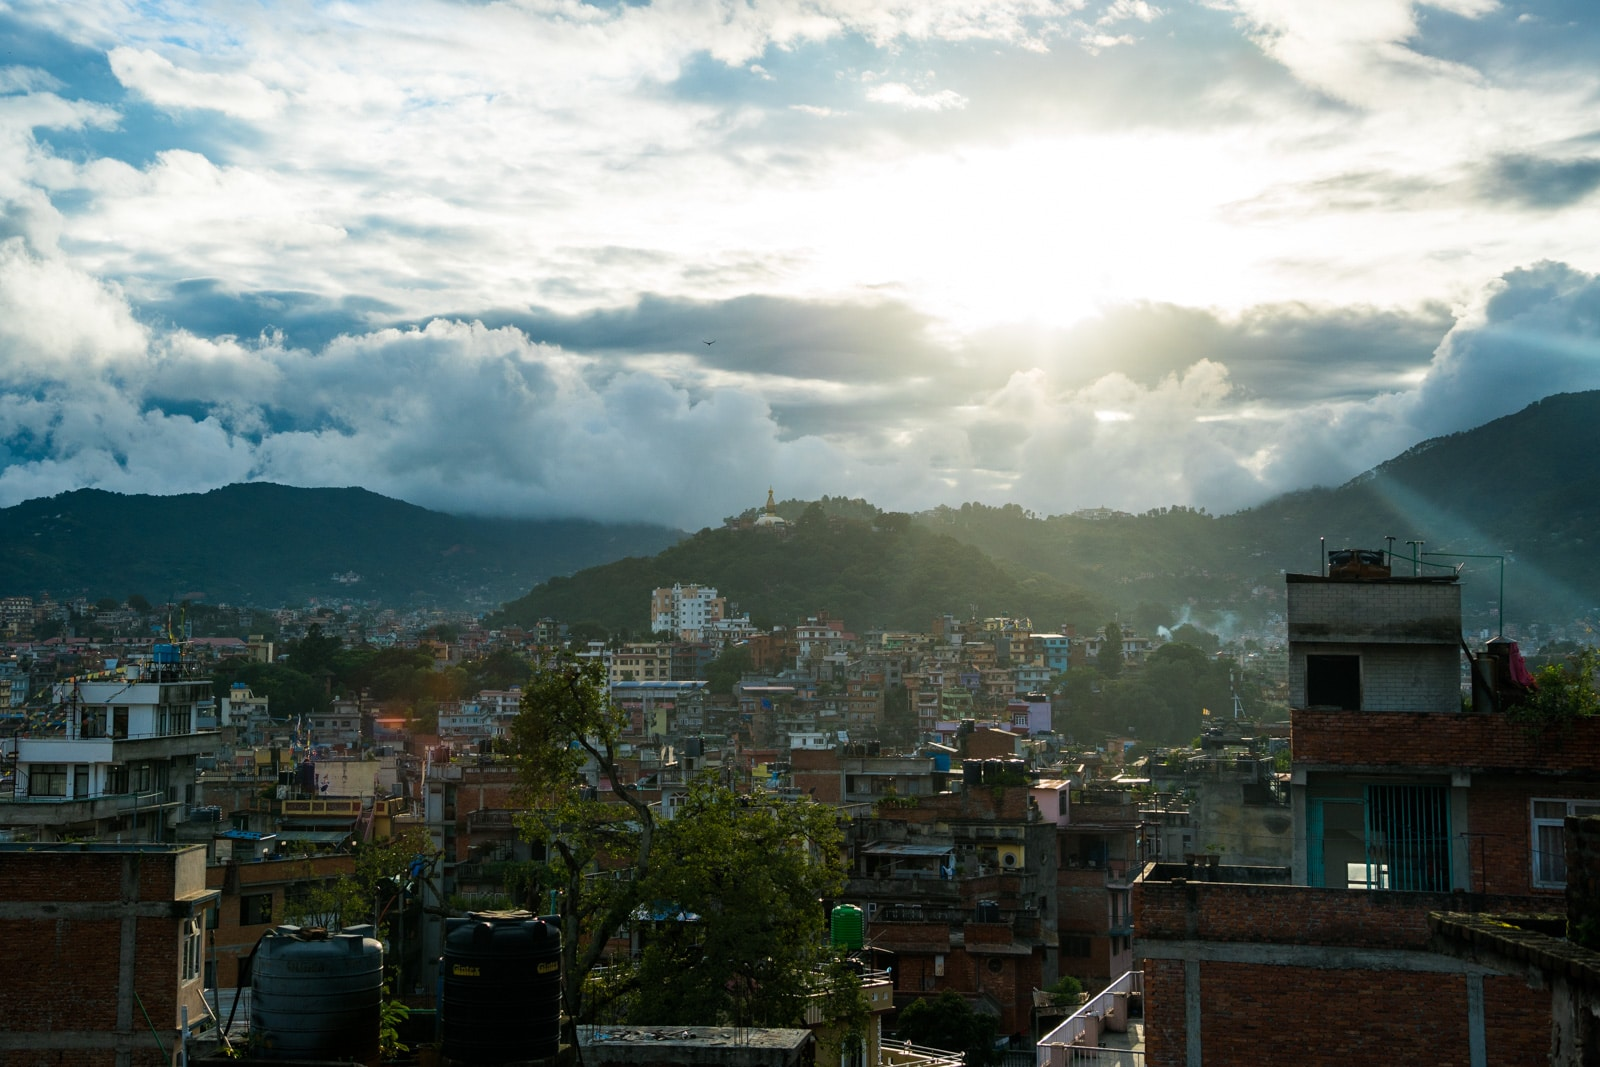 What it's like to travel in Nepal during monsoon - Sunset over Kathmandu - Lost With Purpose travel blog